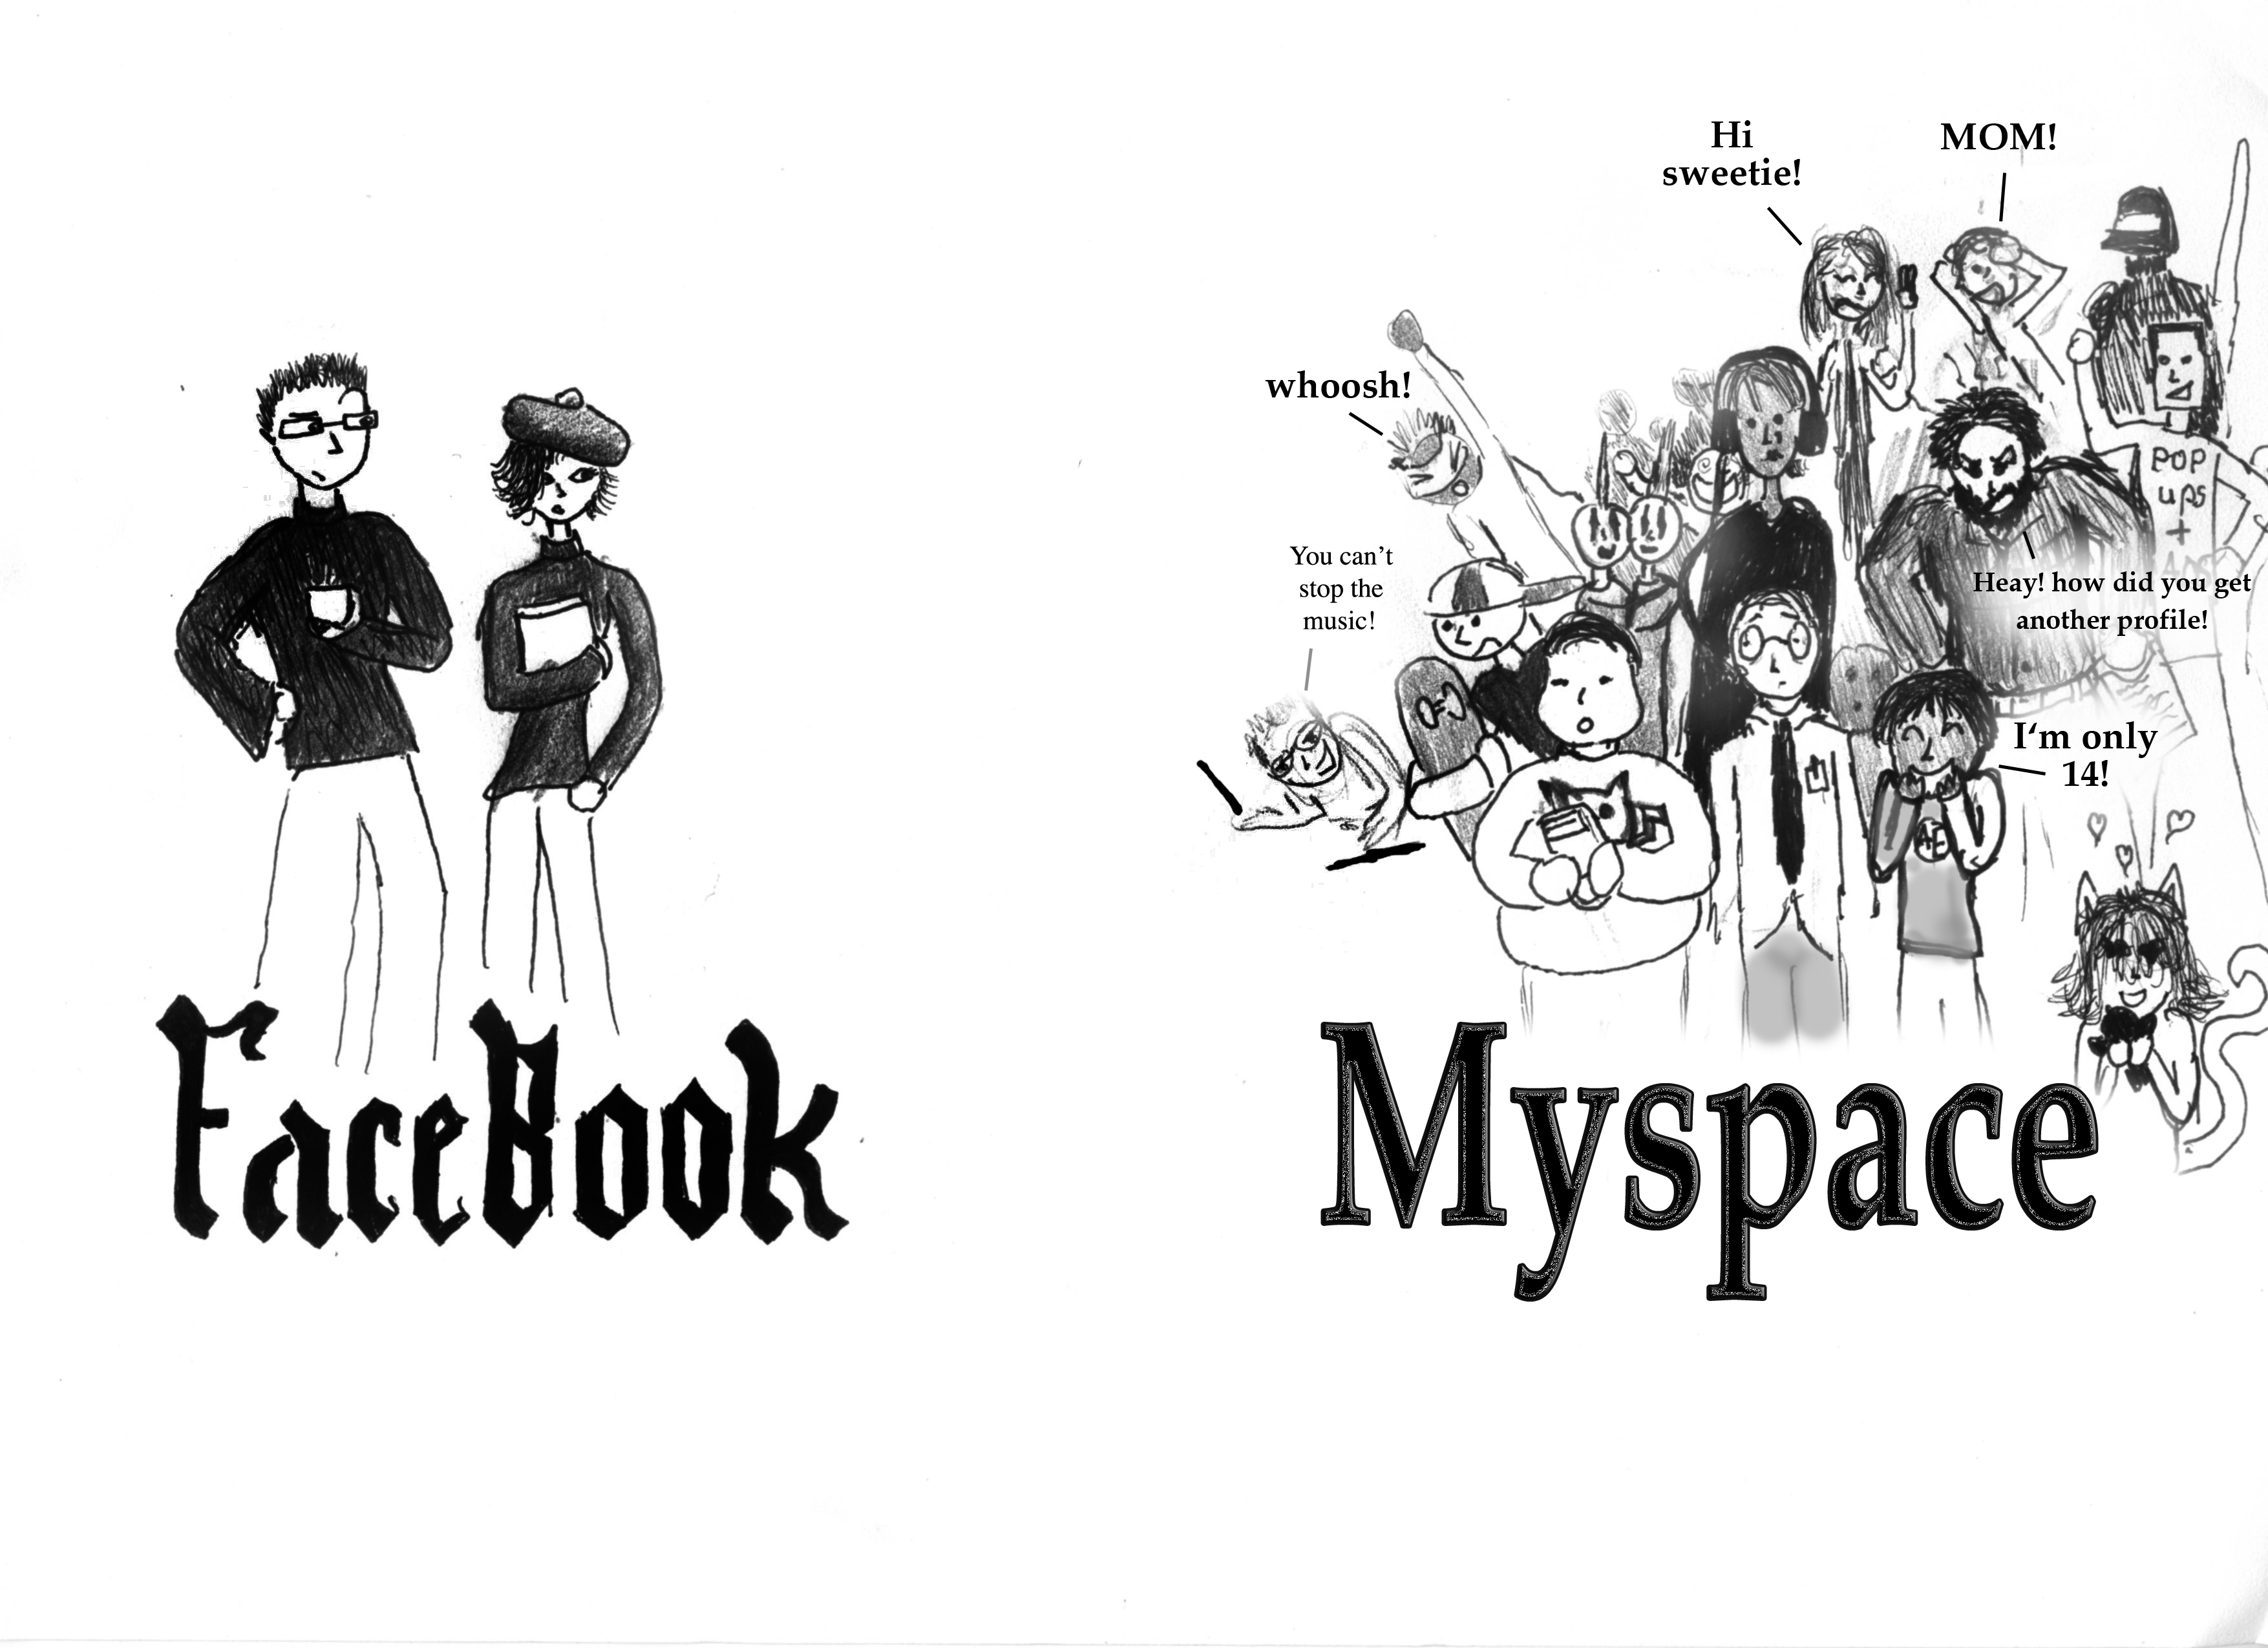 Online Inequality The Facebook Myspace Divide